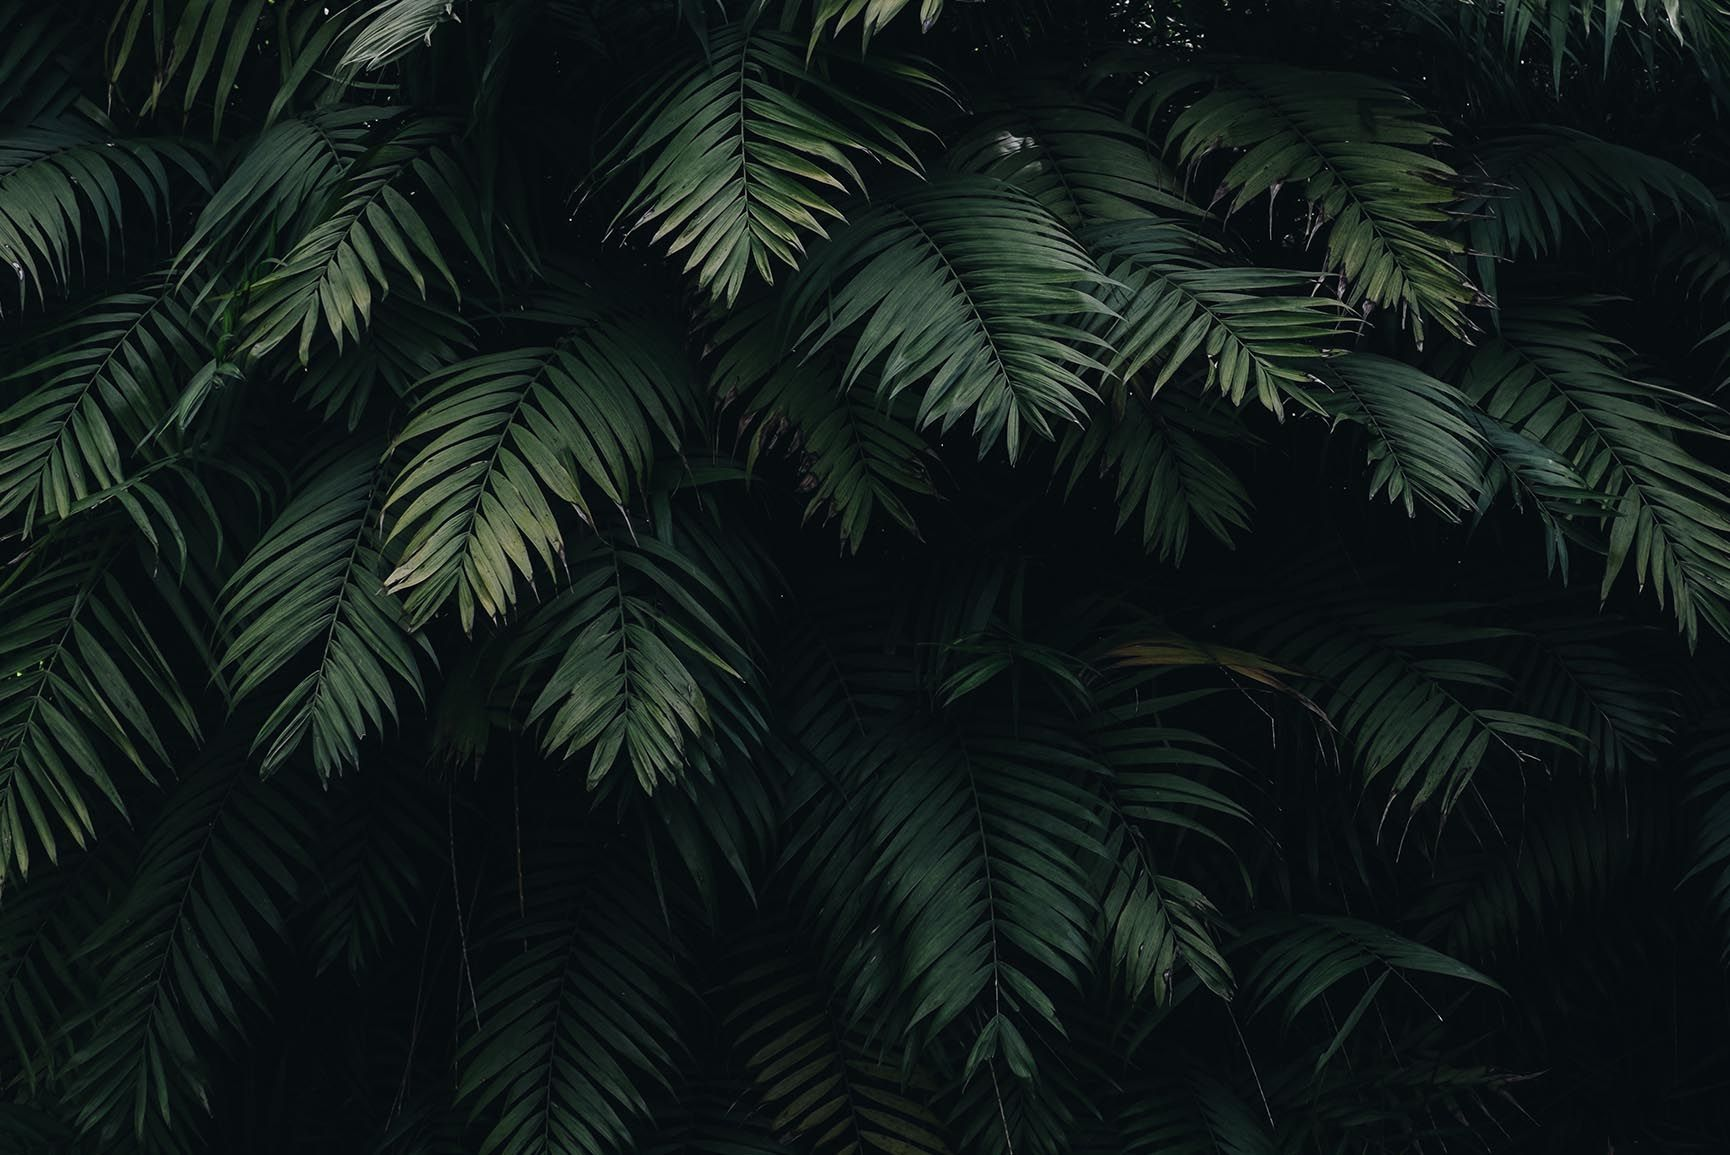 Tropical Jungle Wallpapers Top Free Tropical Jungle Backgrounds Wallpaperaccess